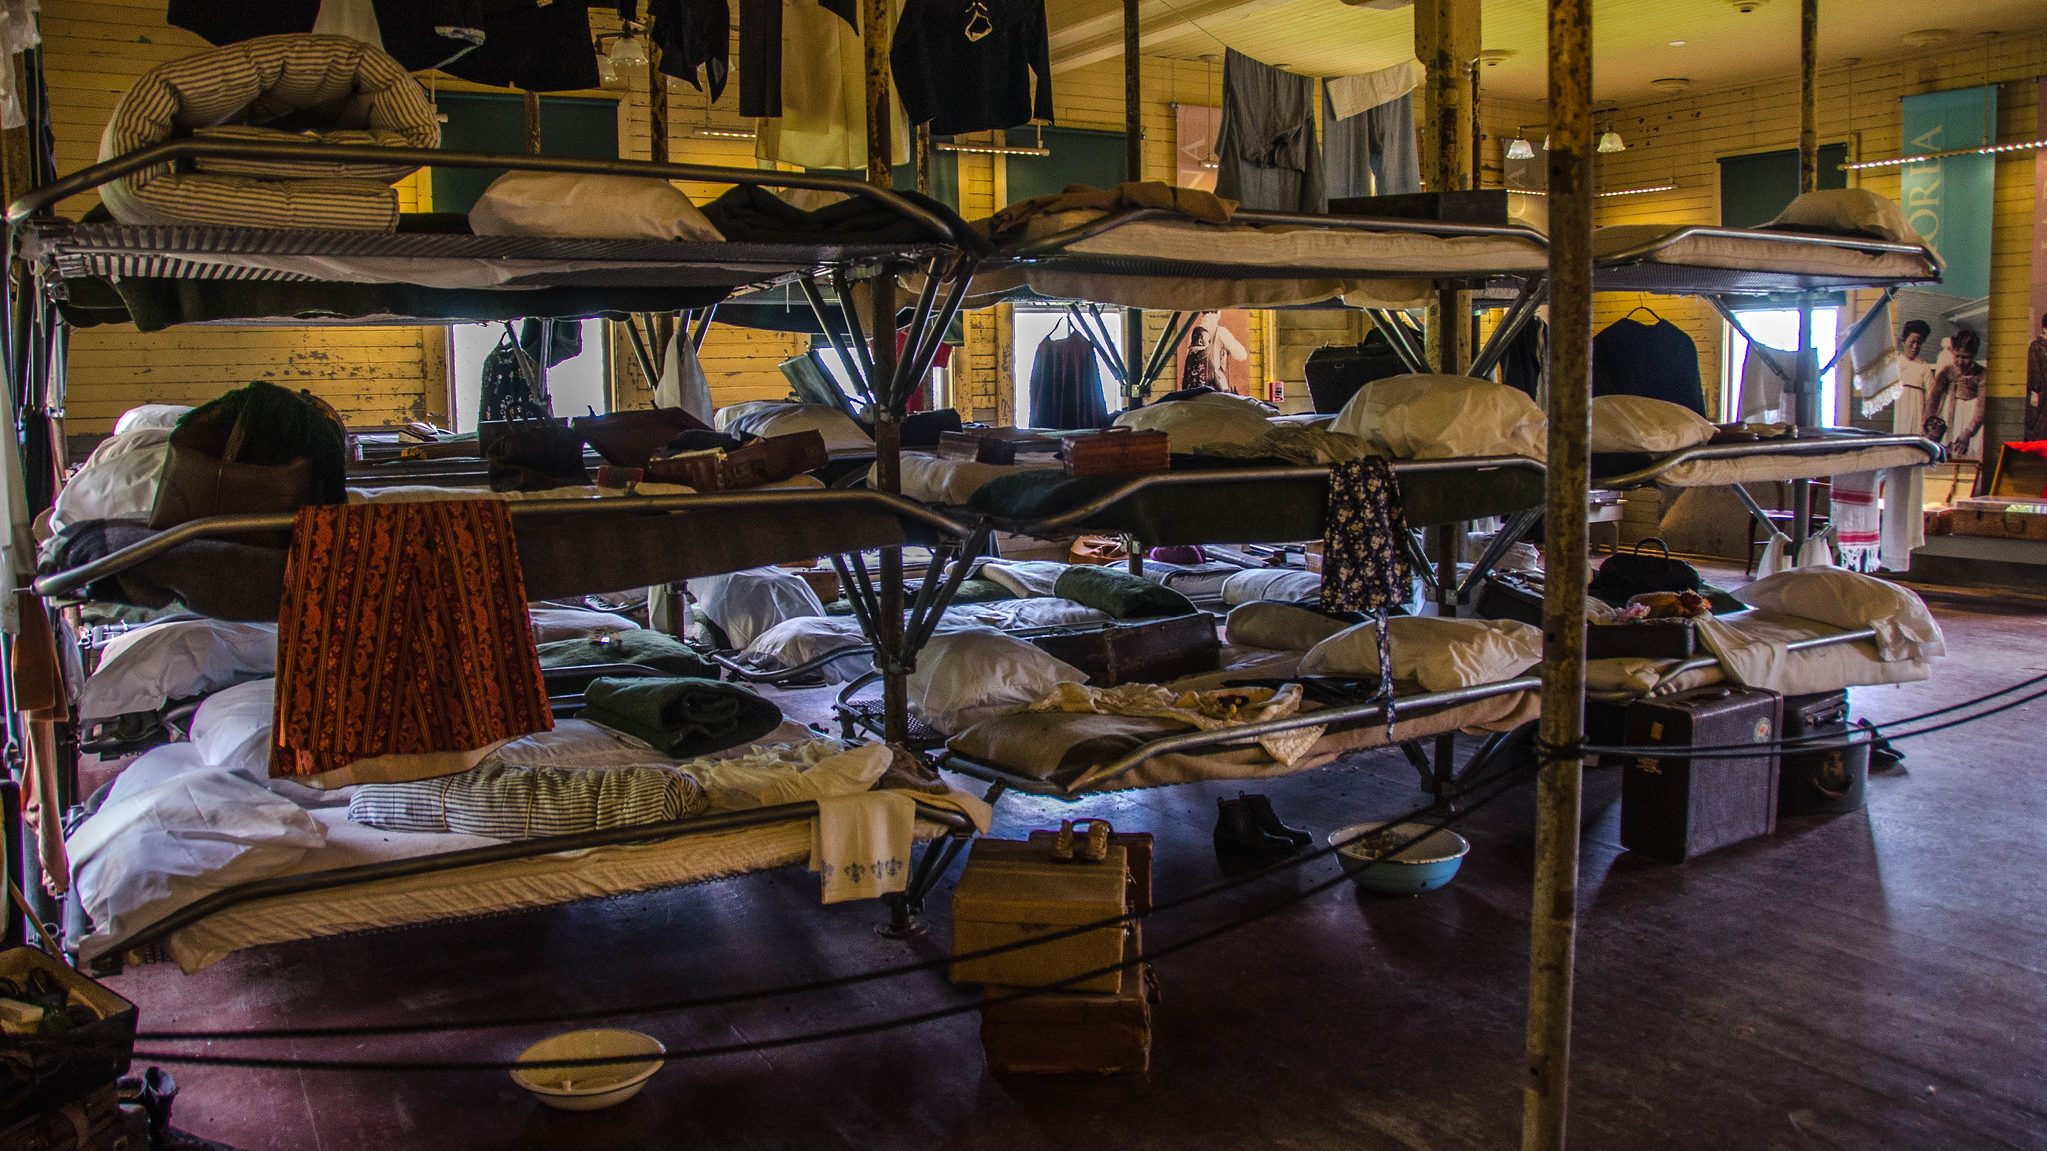 A row of bunk beds draped in clothing and other personal possessions, roped off inside a museum space.